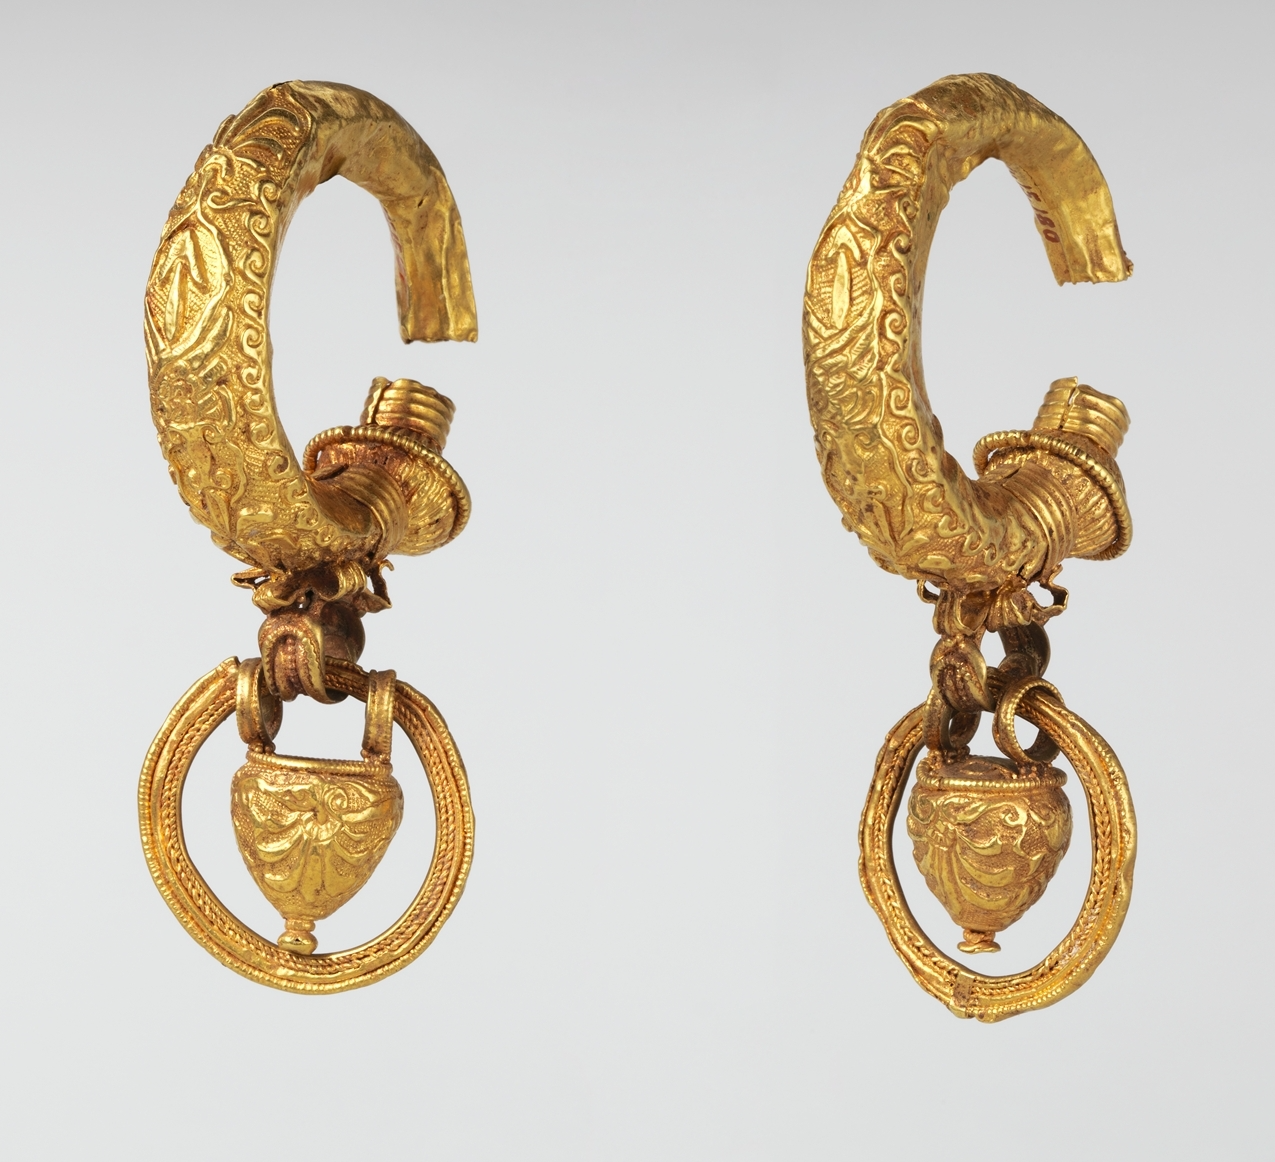 The pendant rings that hang from these hollow gold earrings are thought to have contained perfume. 4th-3rd century B.C., Metropolitan Museum of Art.